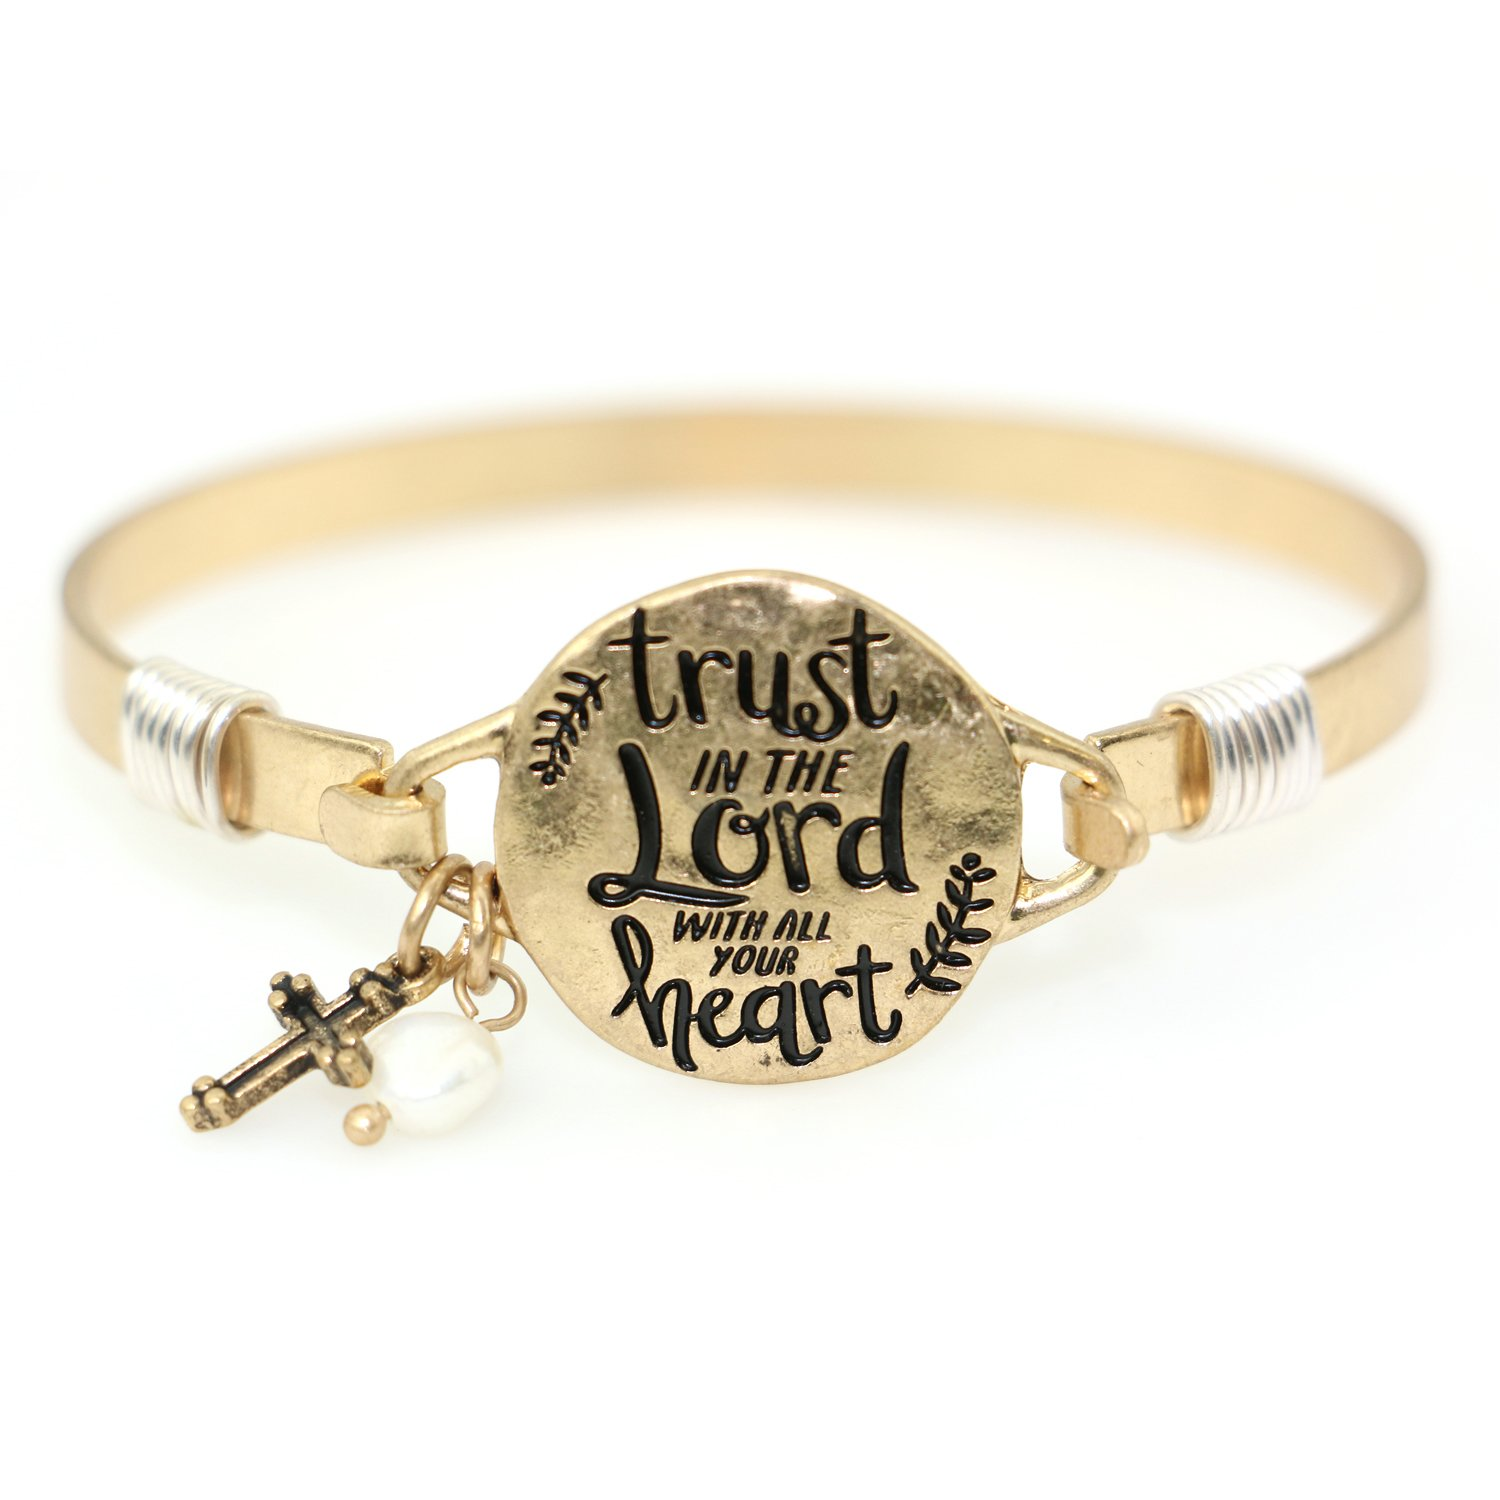 ''Trust in the Lord with all your Heart'' Christian Bangle Disc Bracelet with Wire Design and Cross Charm and Bead (Worn Gold)